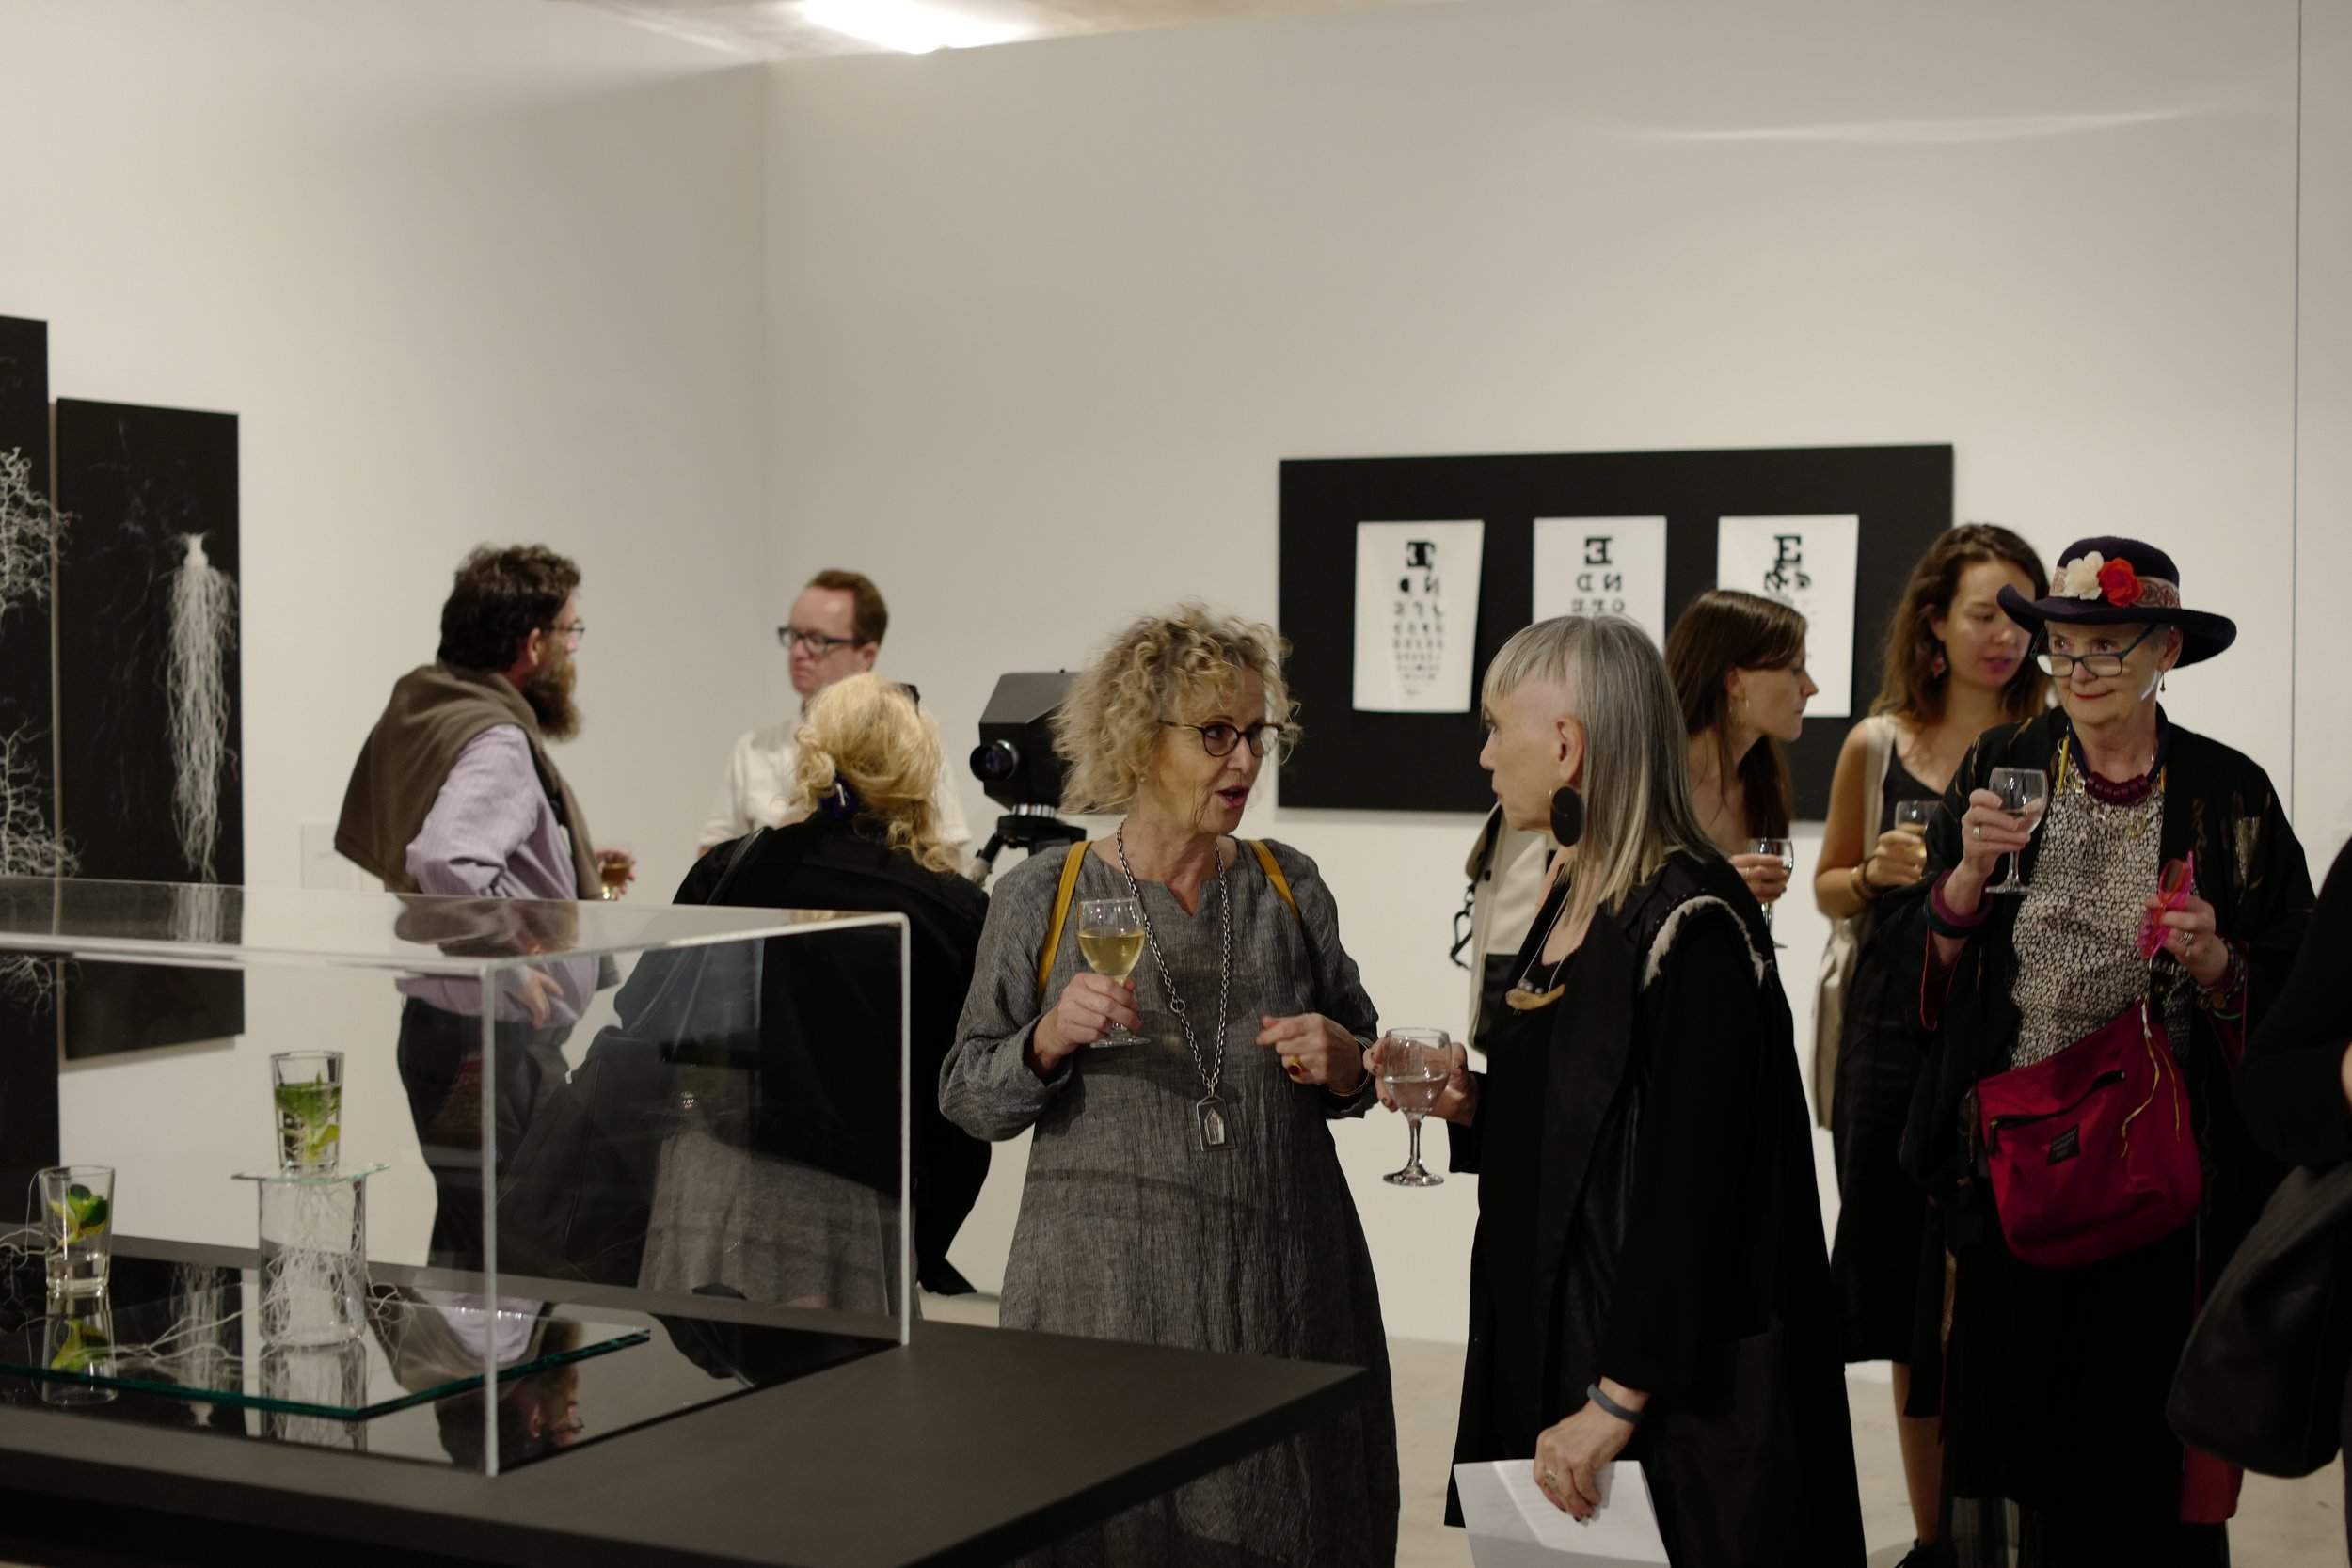 Craft Victoria_Catherine Truman_No surface holds_2019_Opening event_Photography Thomas Lentini_L1080895.jpg